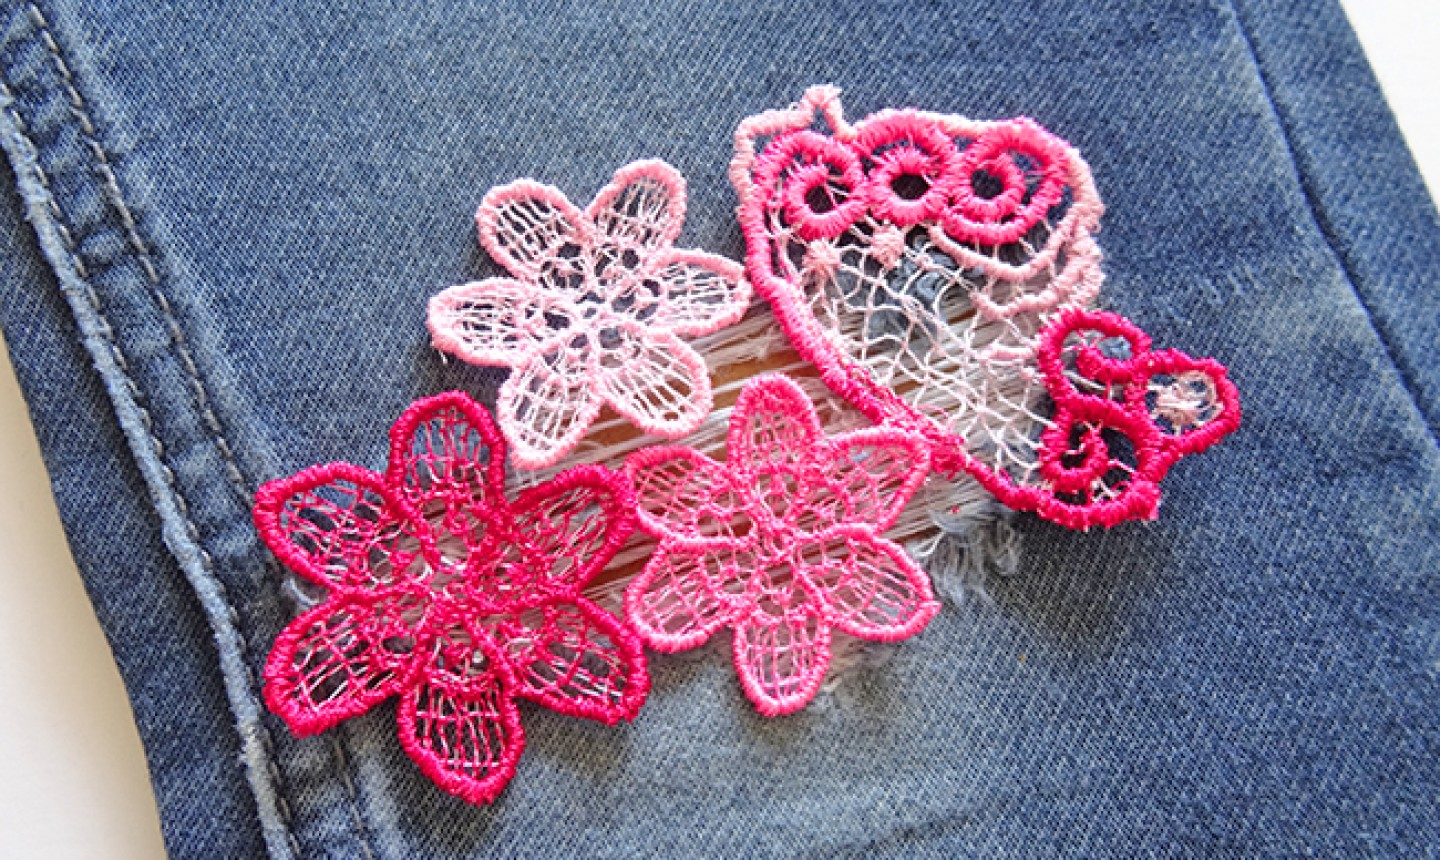 lace flower patches on jeans